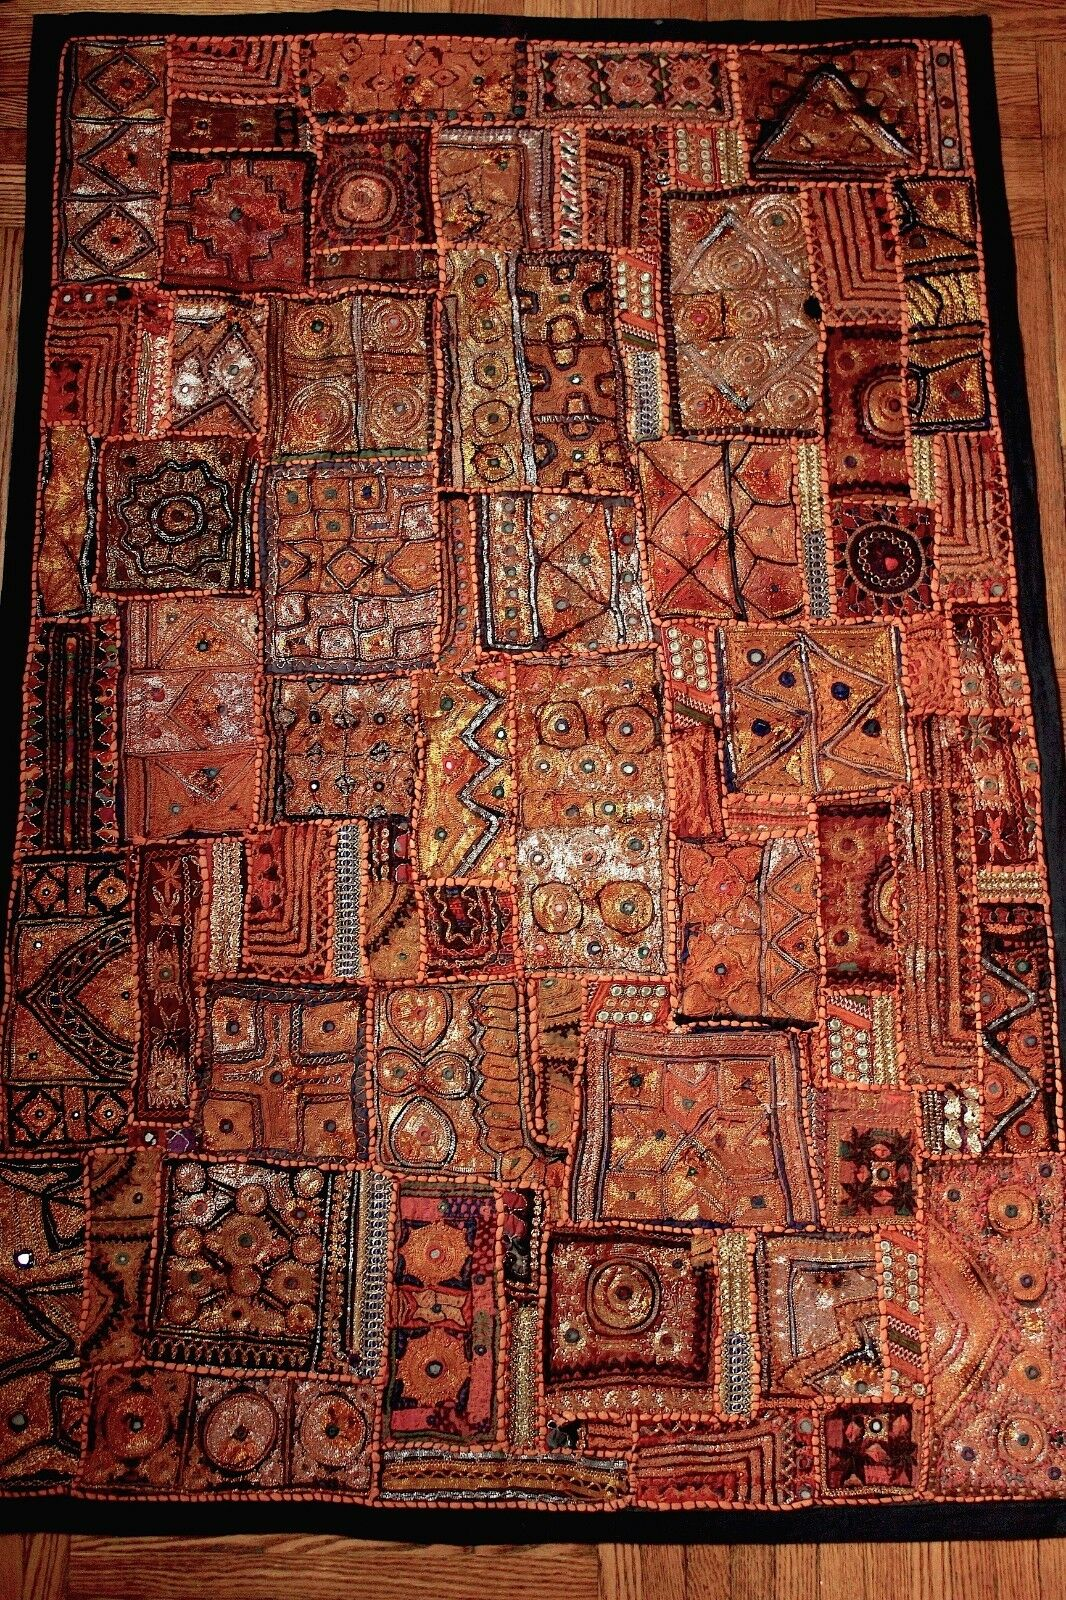 Handcrafted Antique Indian Embroiderot Patchwork Tapestry Wall Hanging Art